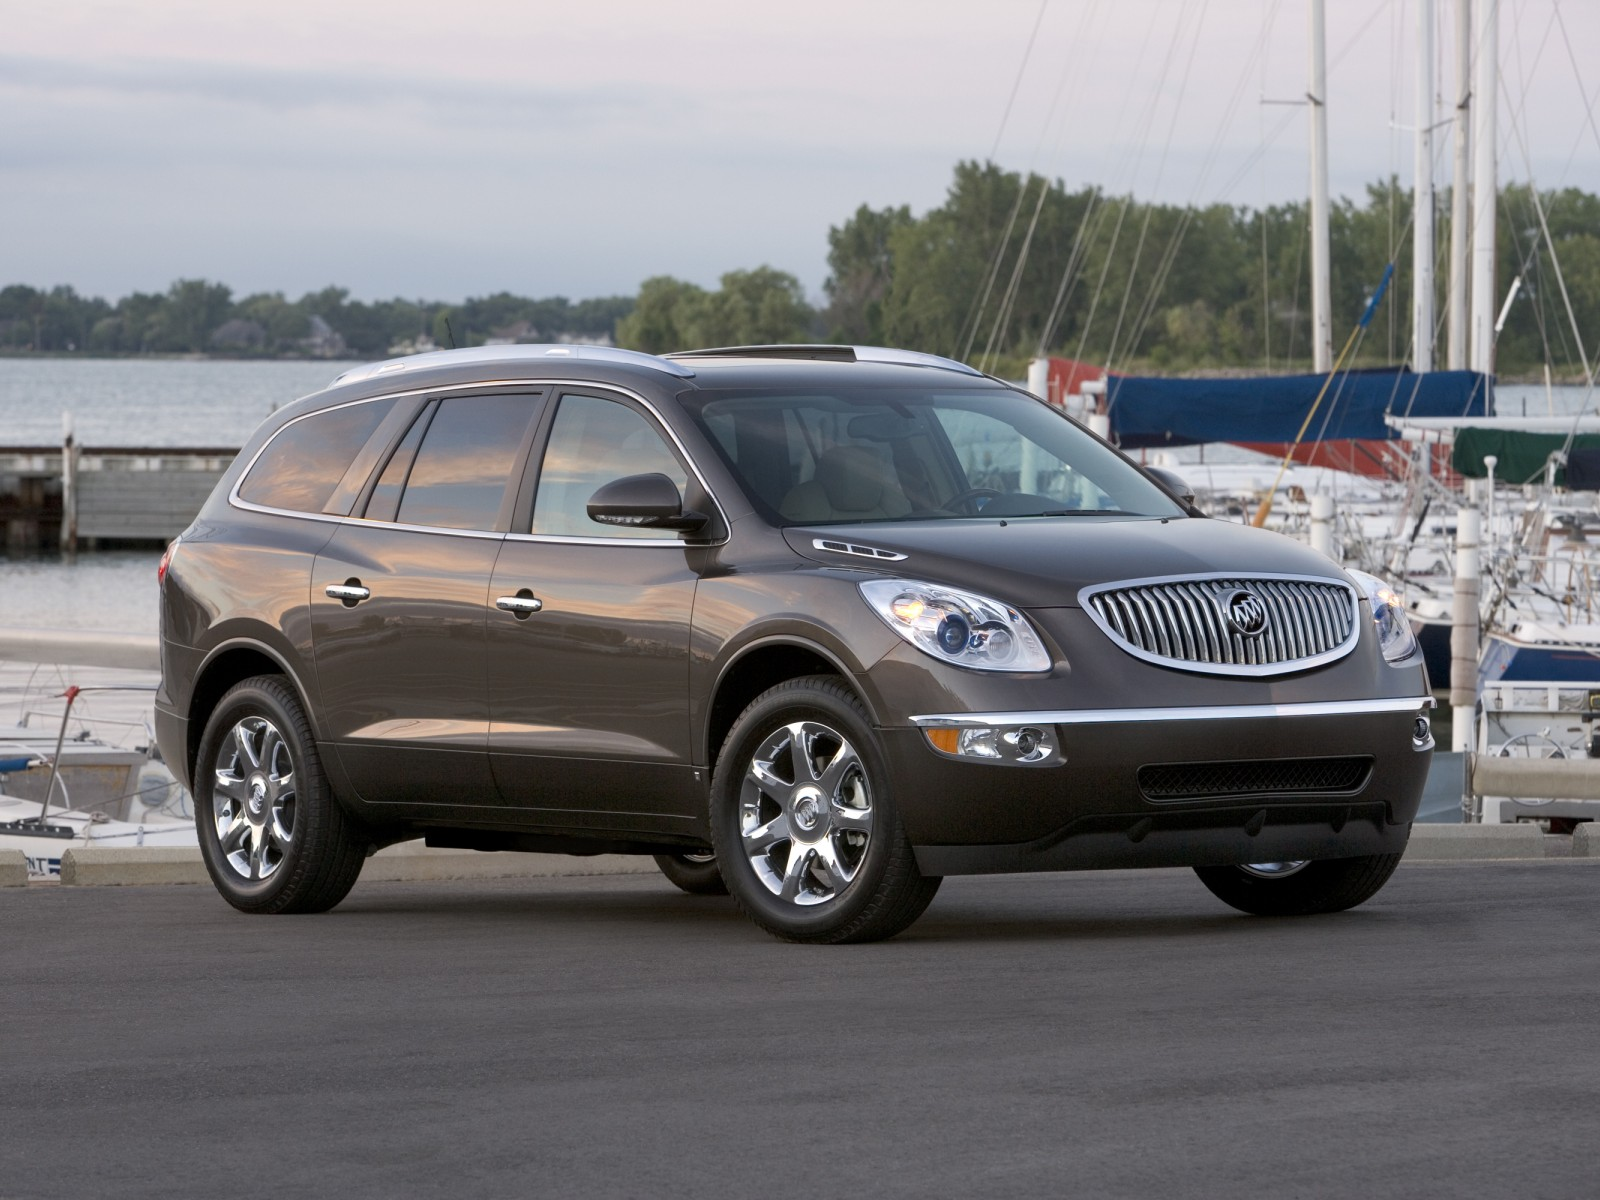 2010 buick enclave cxl wallpapers pictures specifications. Black Bedroom Furniture Sets. Home Design Ideas